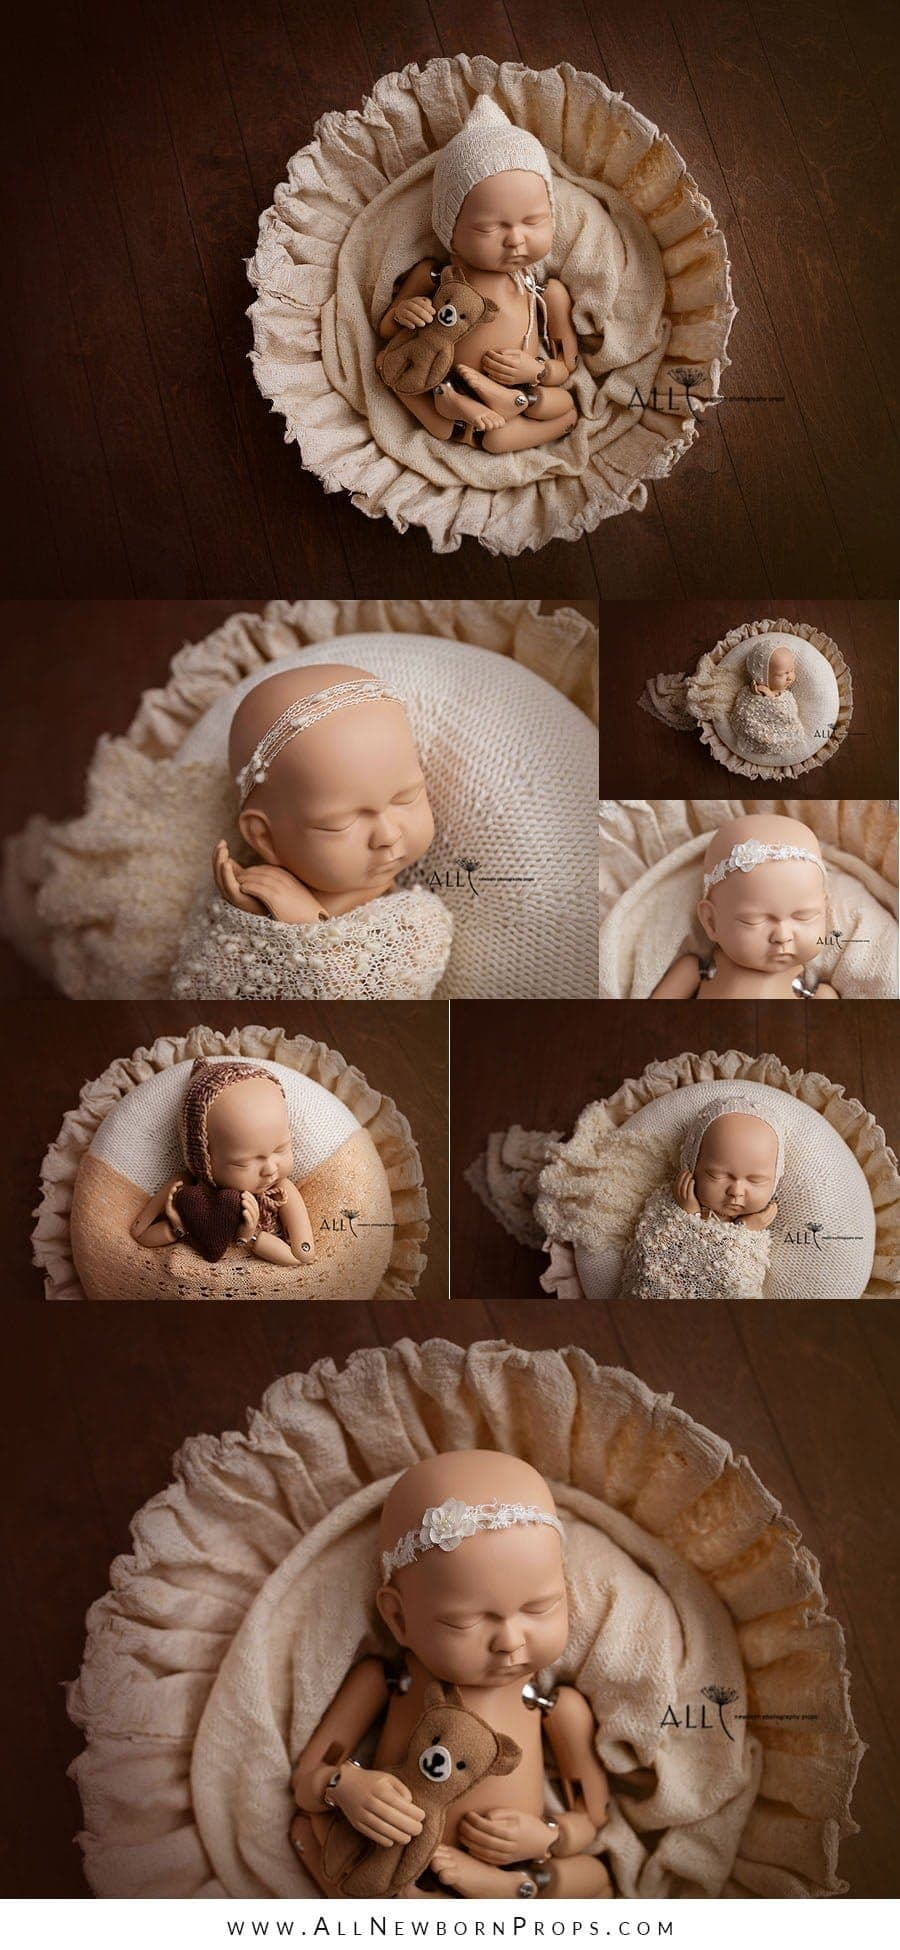 newborn photography basket baby girl boy newbornprops for sale UK